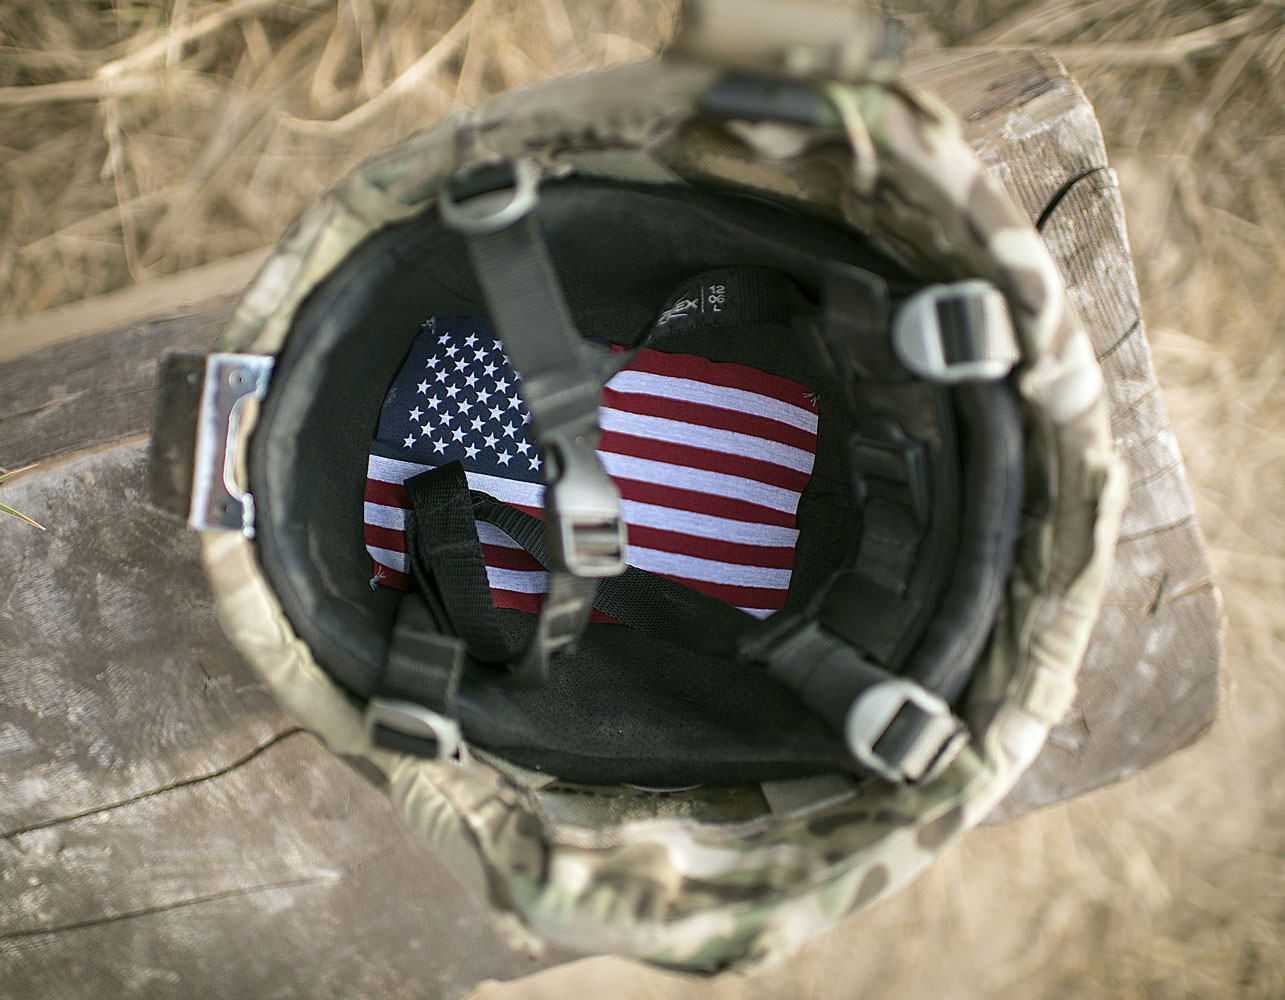 An American flag lines the inside of a U.S. Soldier's helmet at Forward Operating Base Azim Jan Karez in Kandahar, Afghanistan.